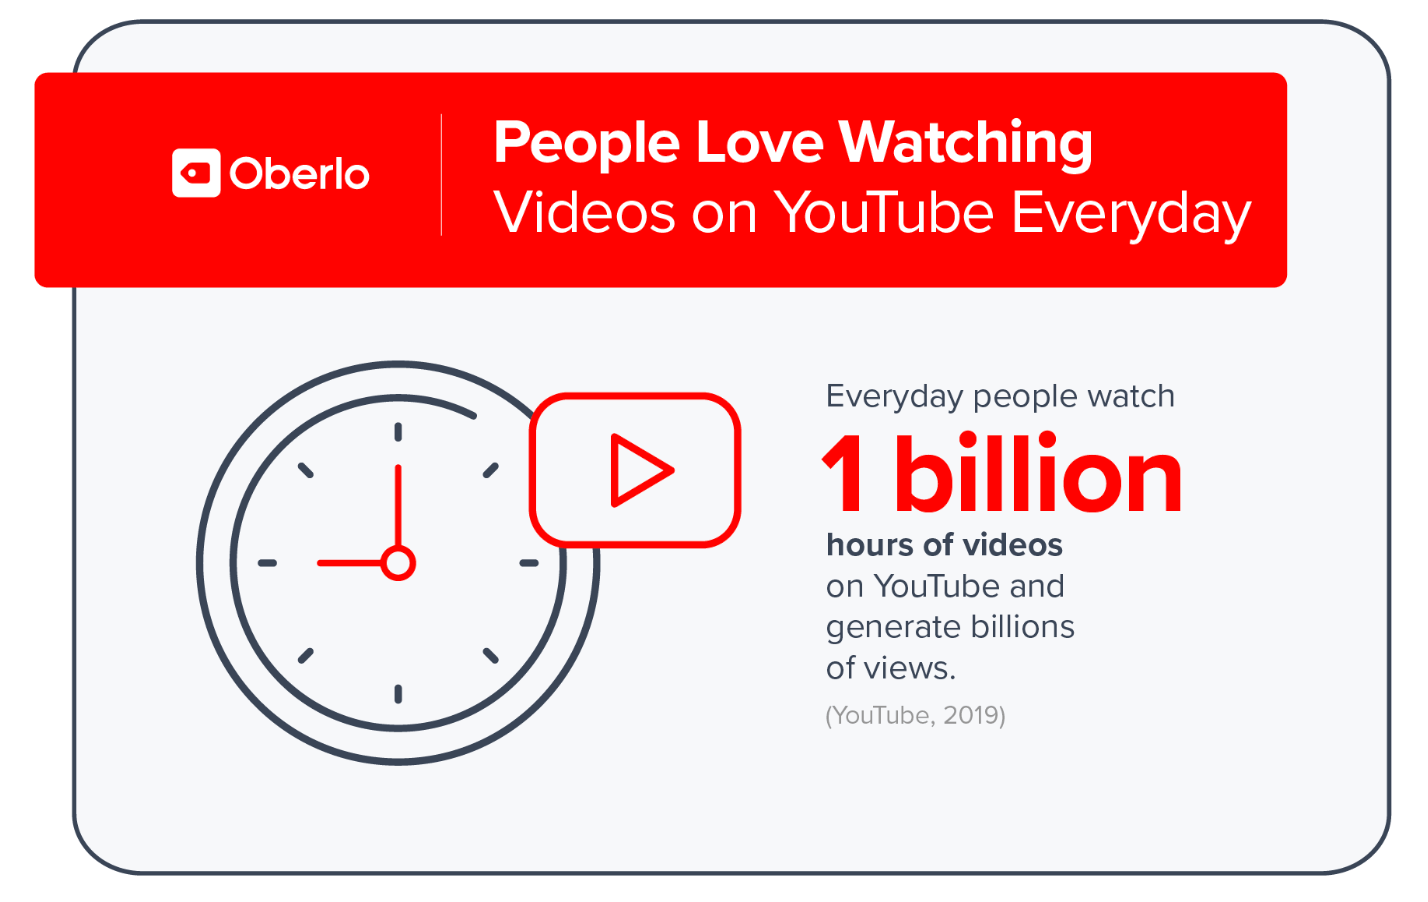 youtube 1 billion hours of video watched